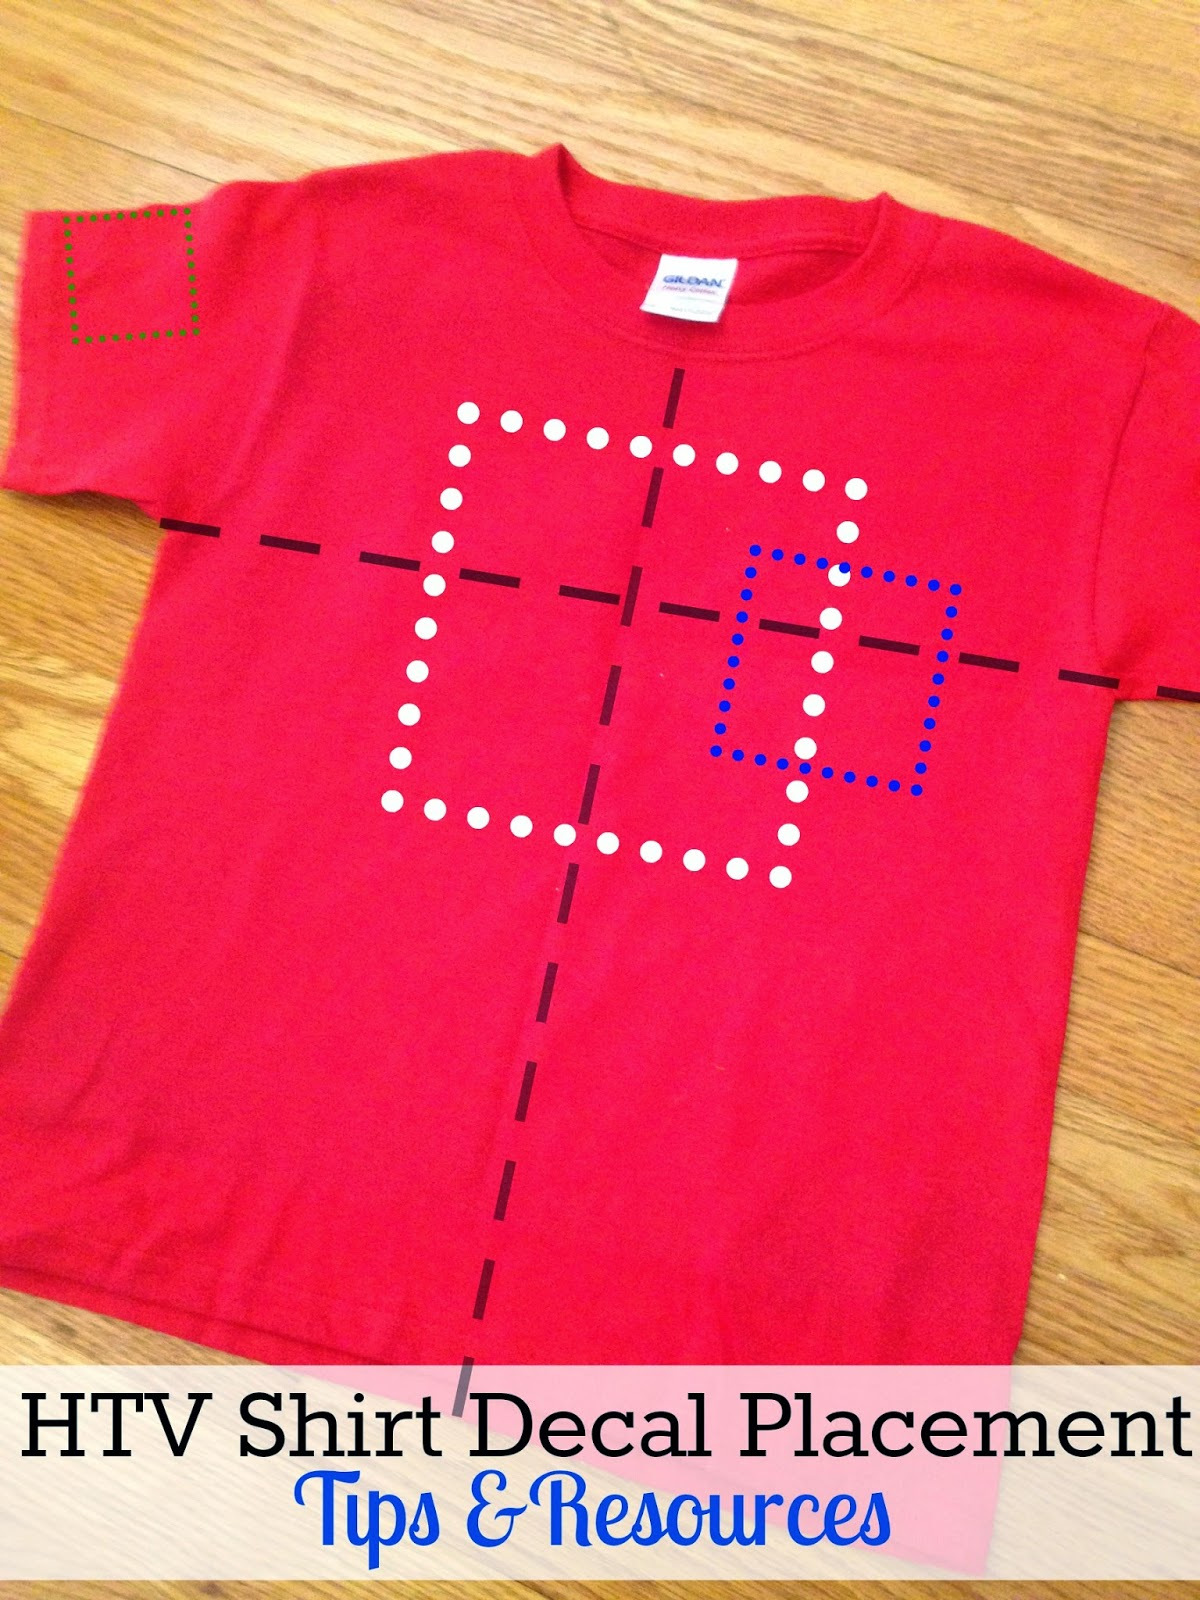 Htv shirt decal placement and size tips resources also silhouette rh silhouetteschoolblog